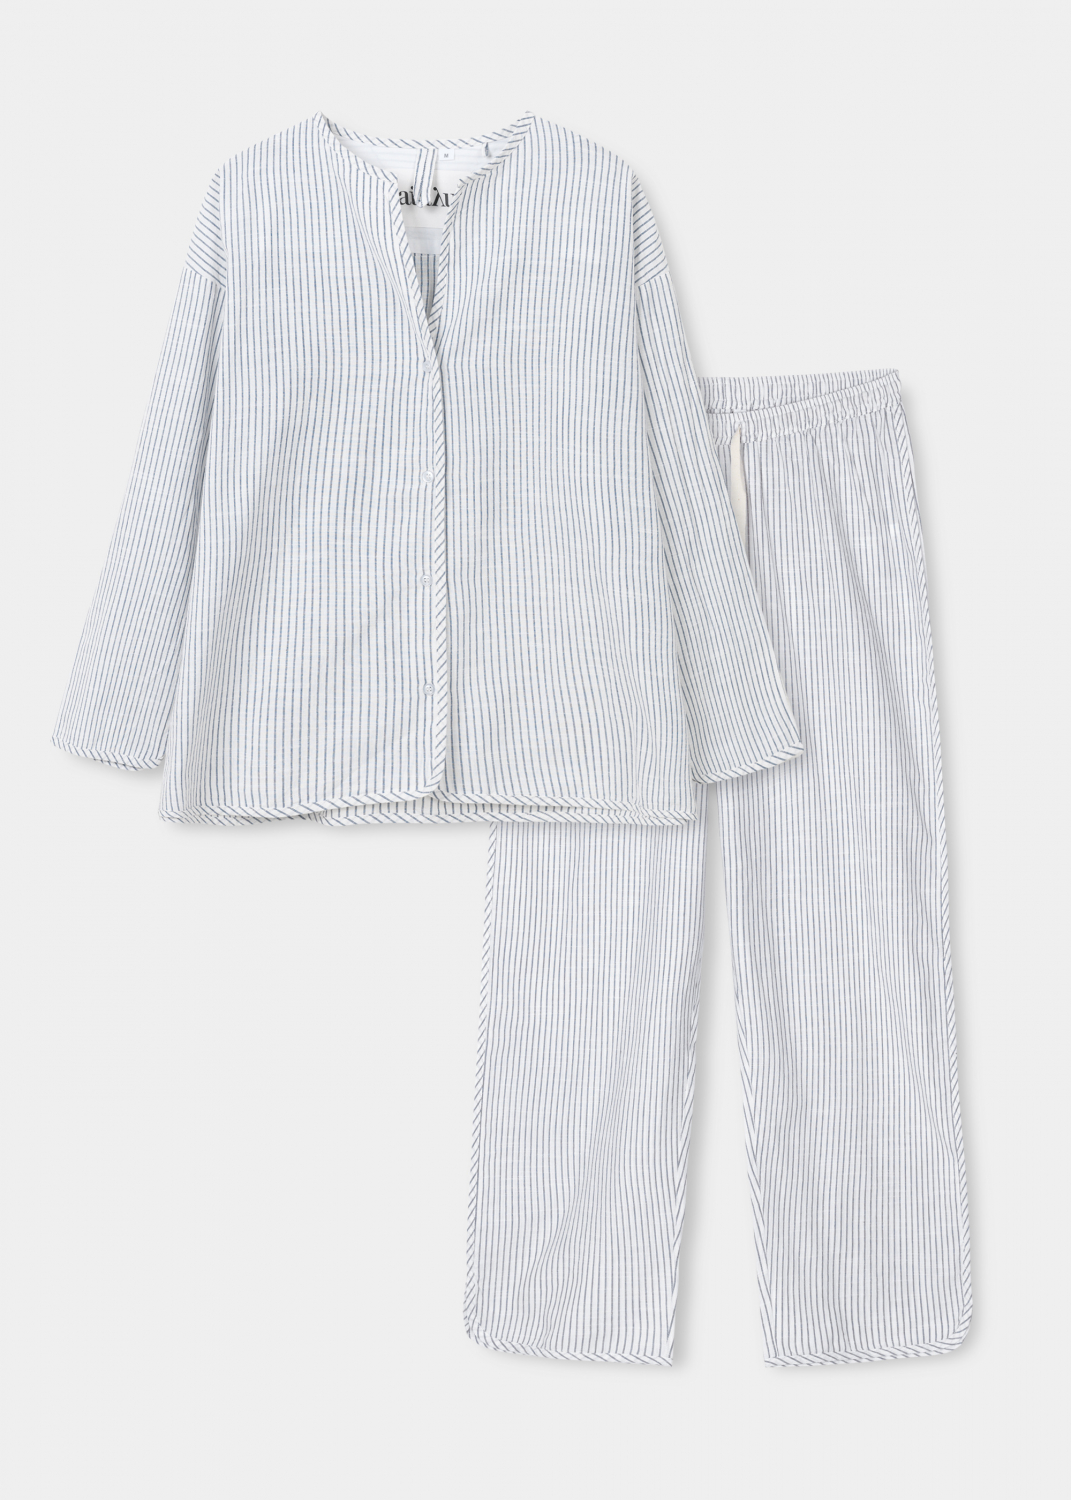 Sleepwear - Pyjamas Striped Thumbnail